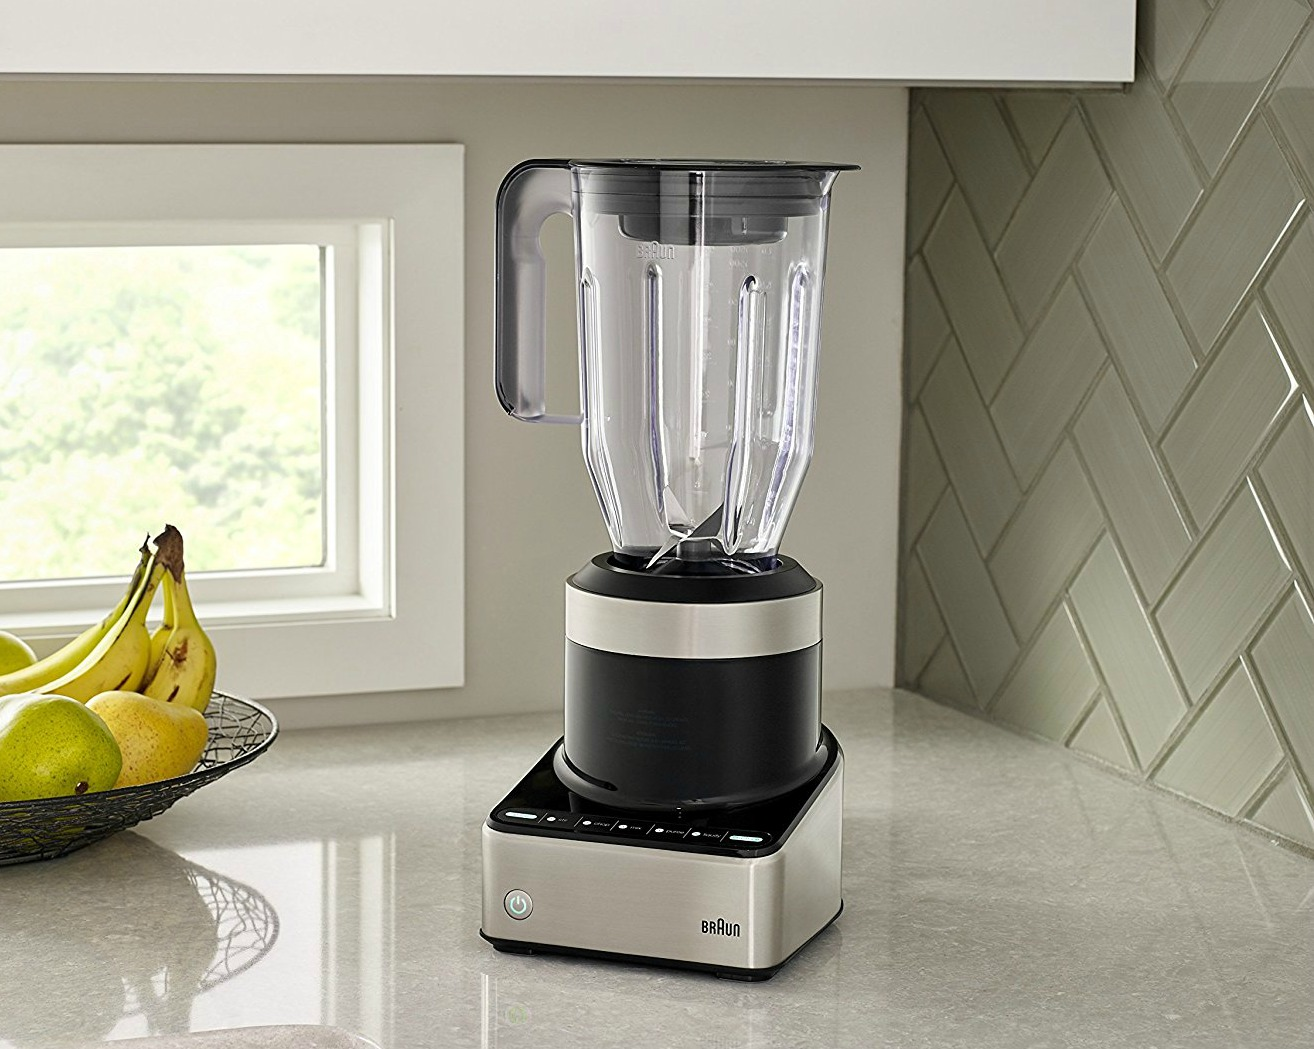 Braun Blender on a kitchen counter